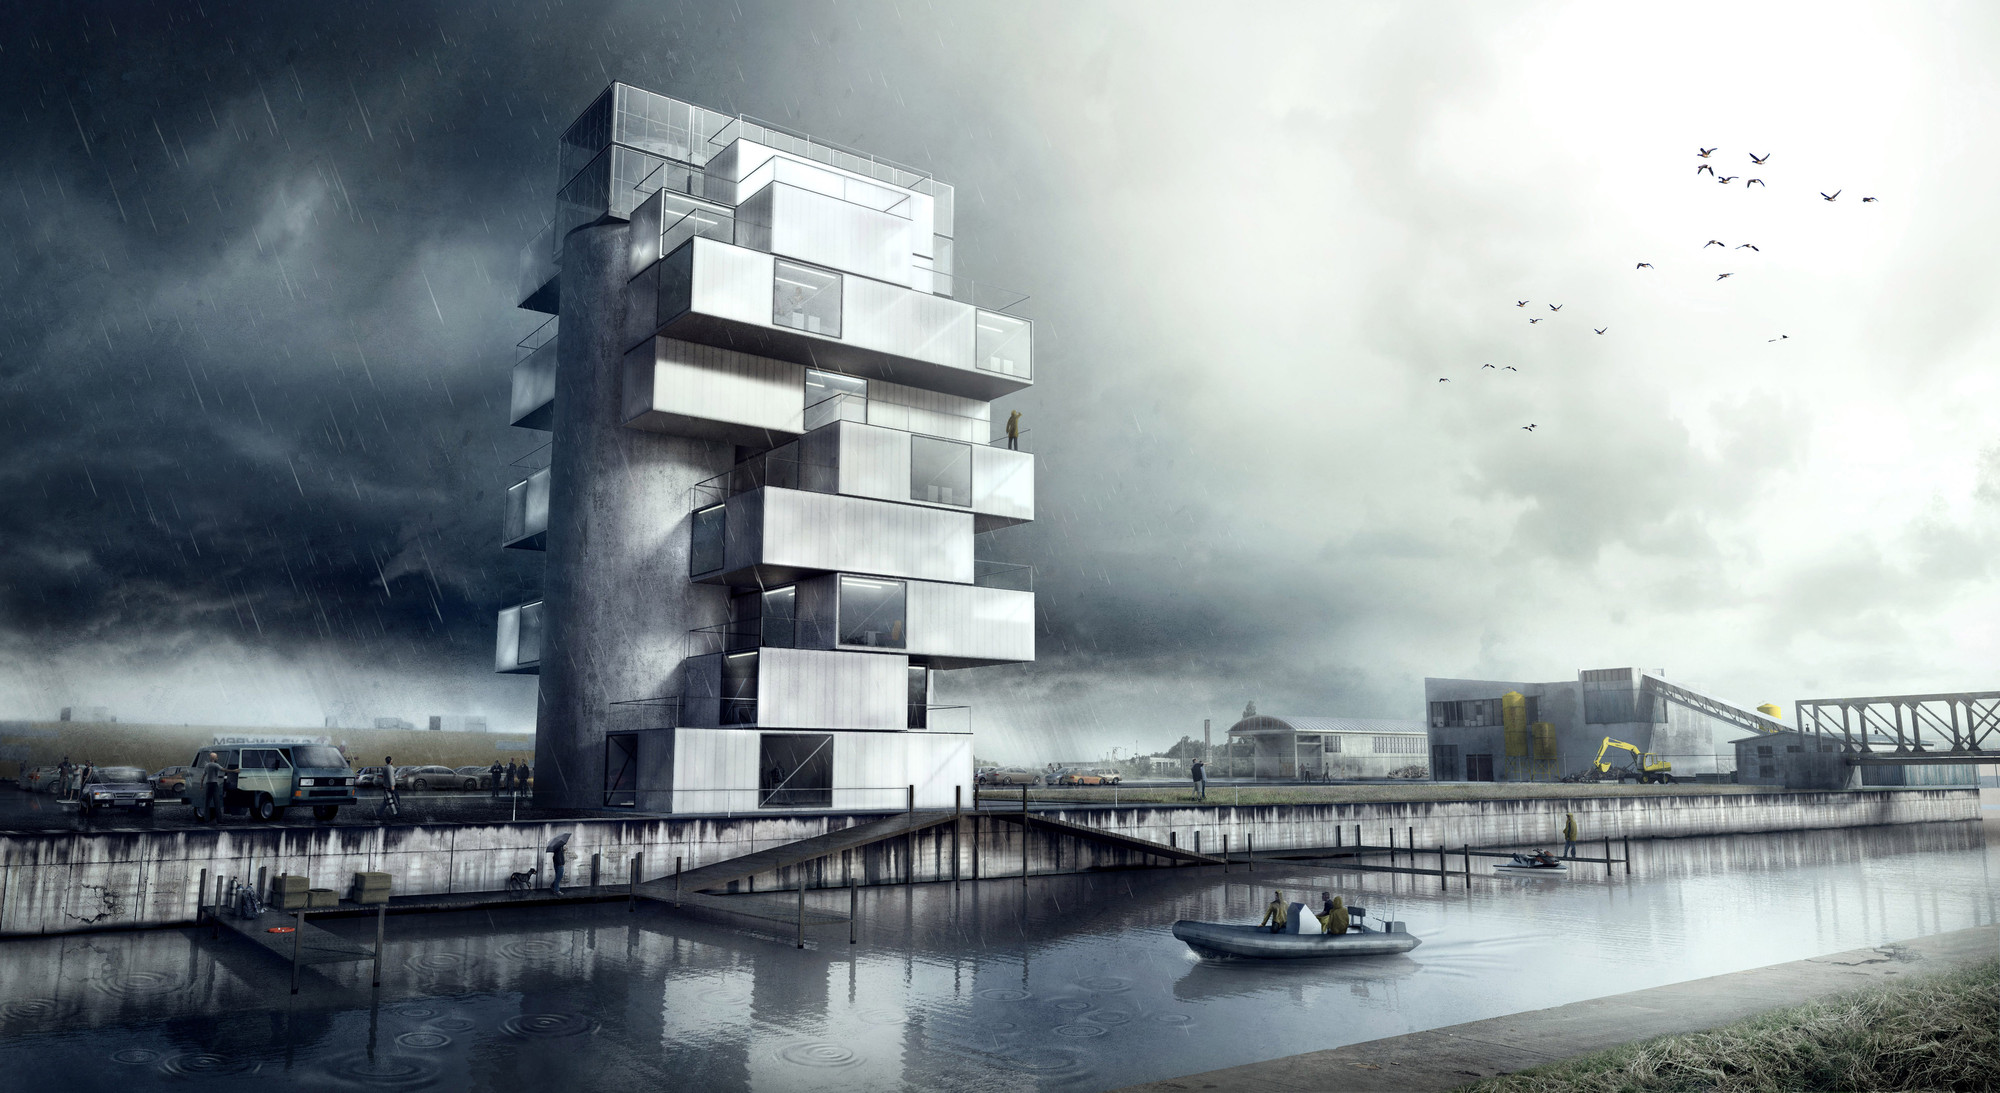 'BS25' Silos - Diving and Indoor Skydiving Center Proposal / Moko Architects, Courtesy of Moko Architects